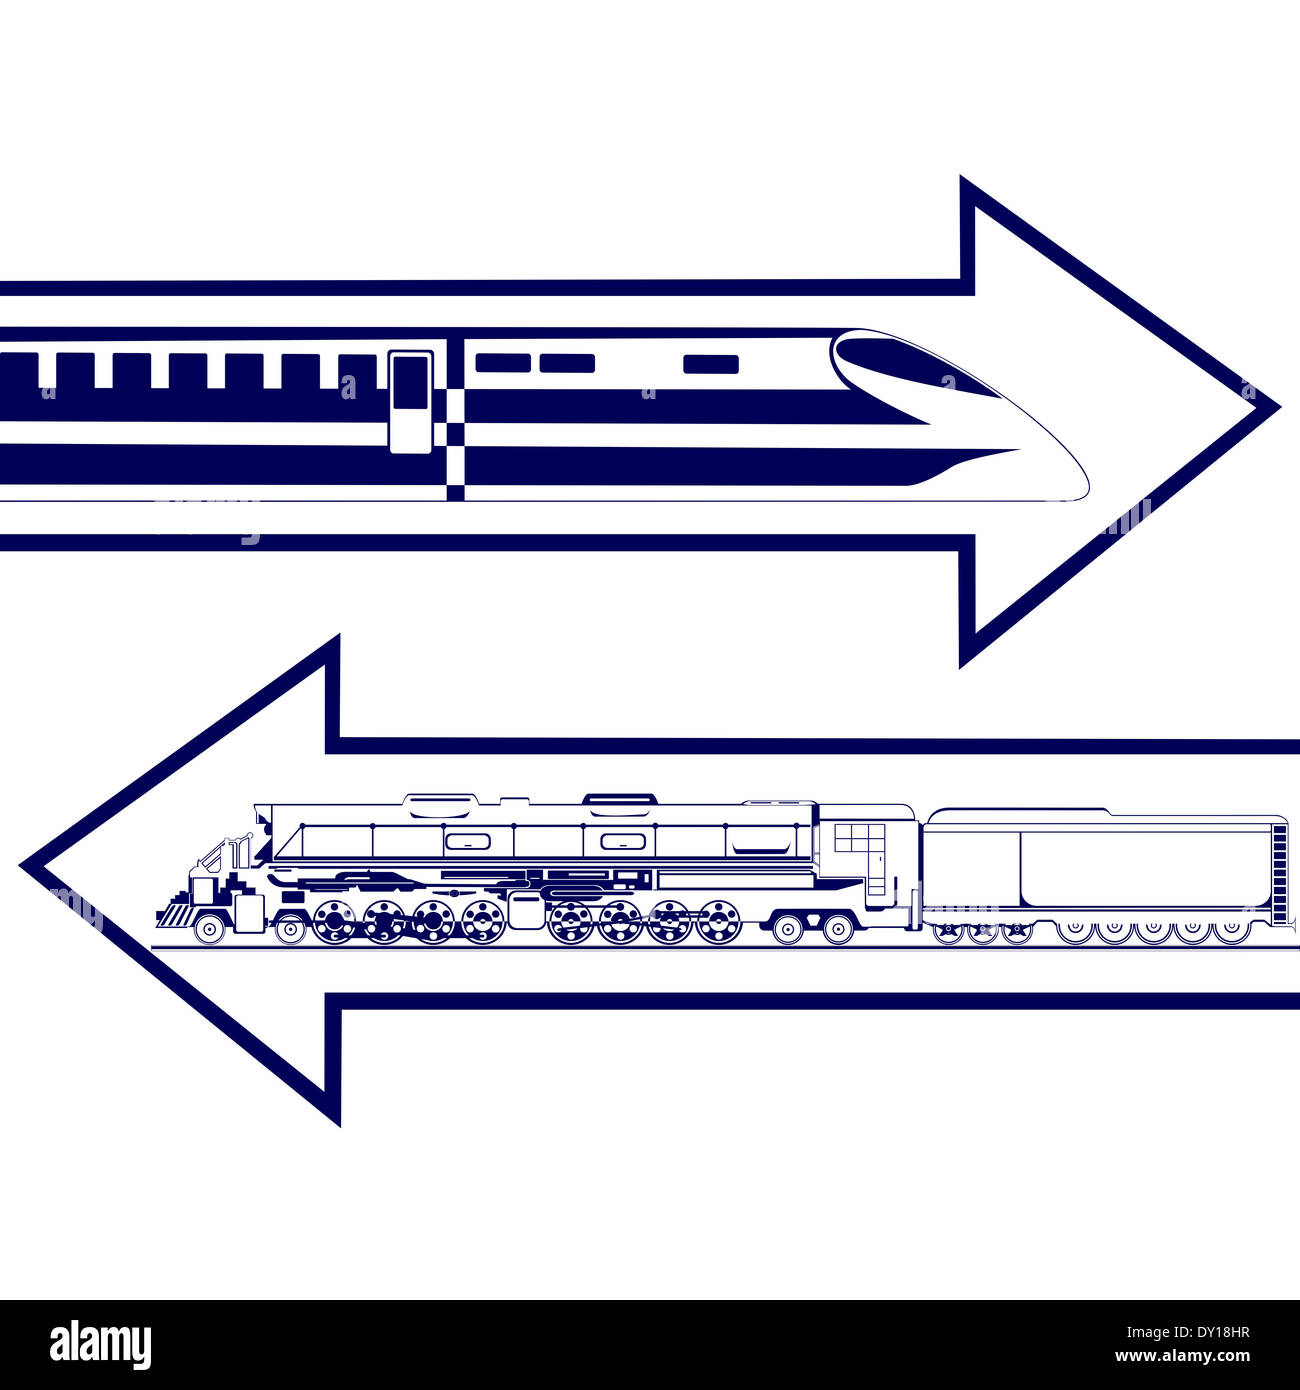 Railway transport. Abstract image of an old locomotive and modern trains. Illustration on white background. - Stock Image